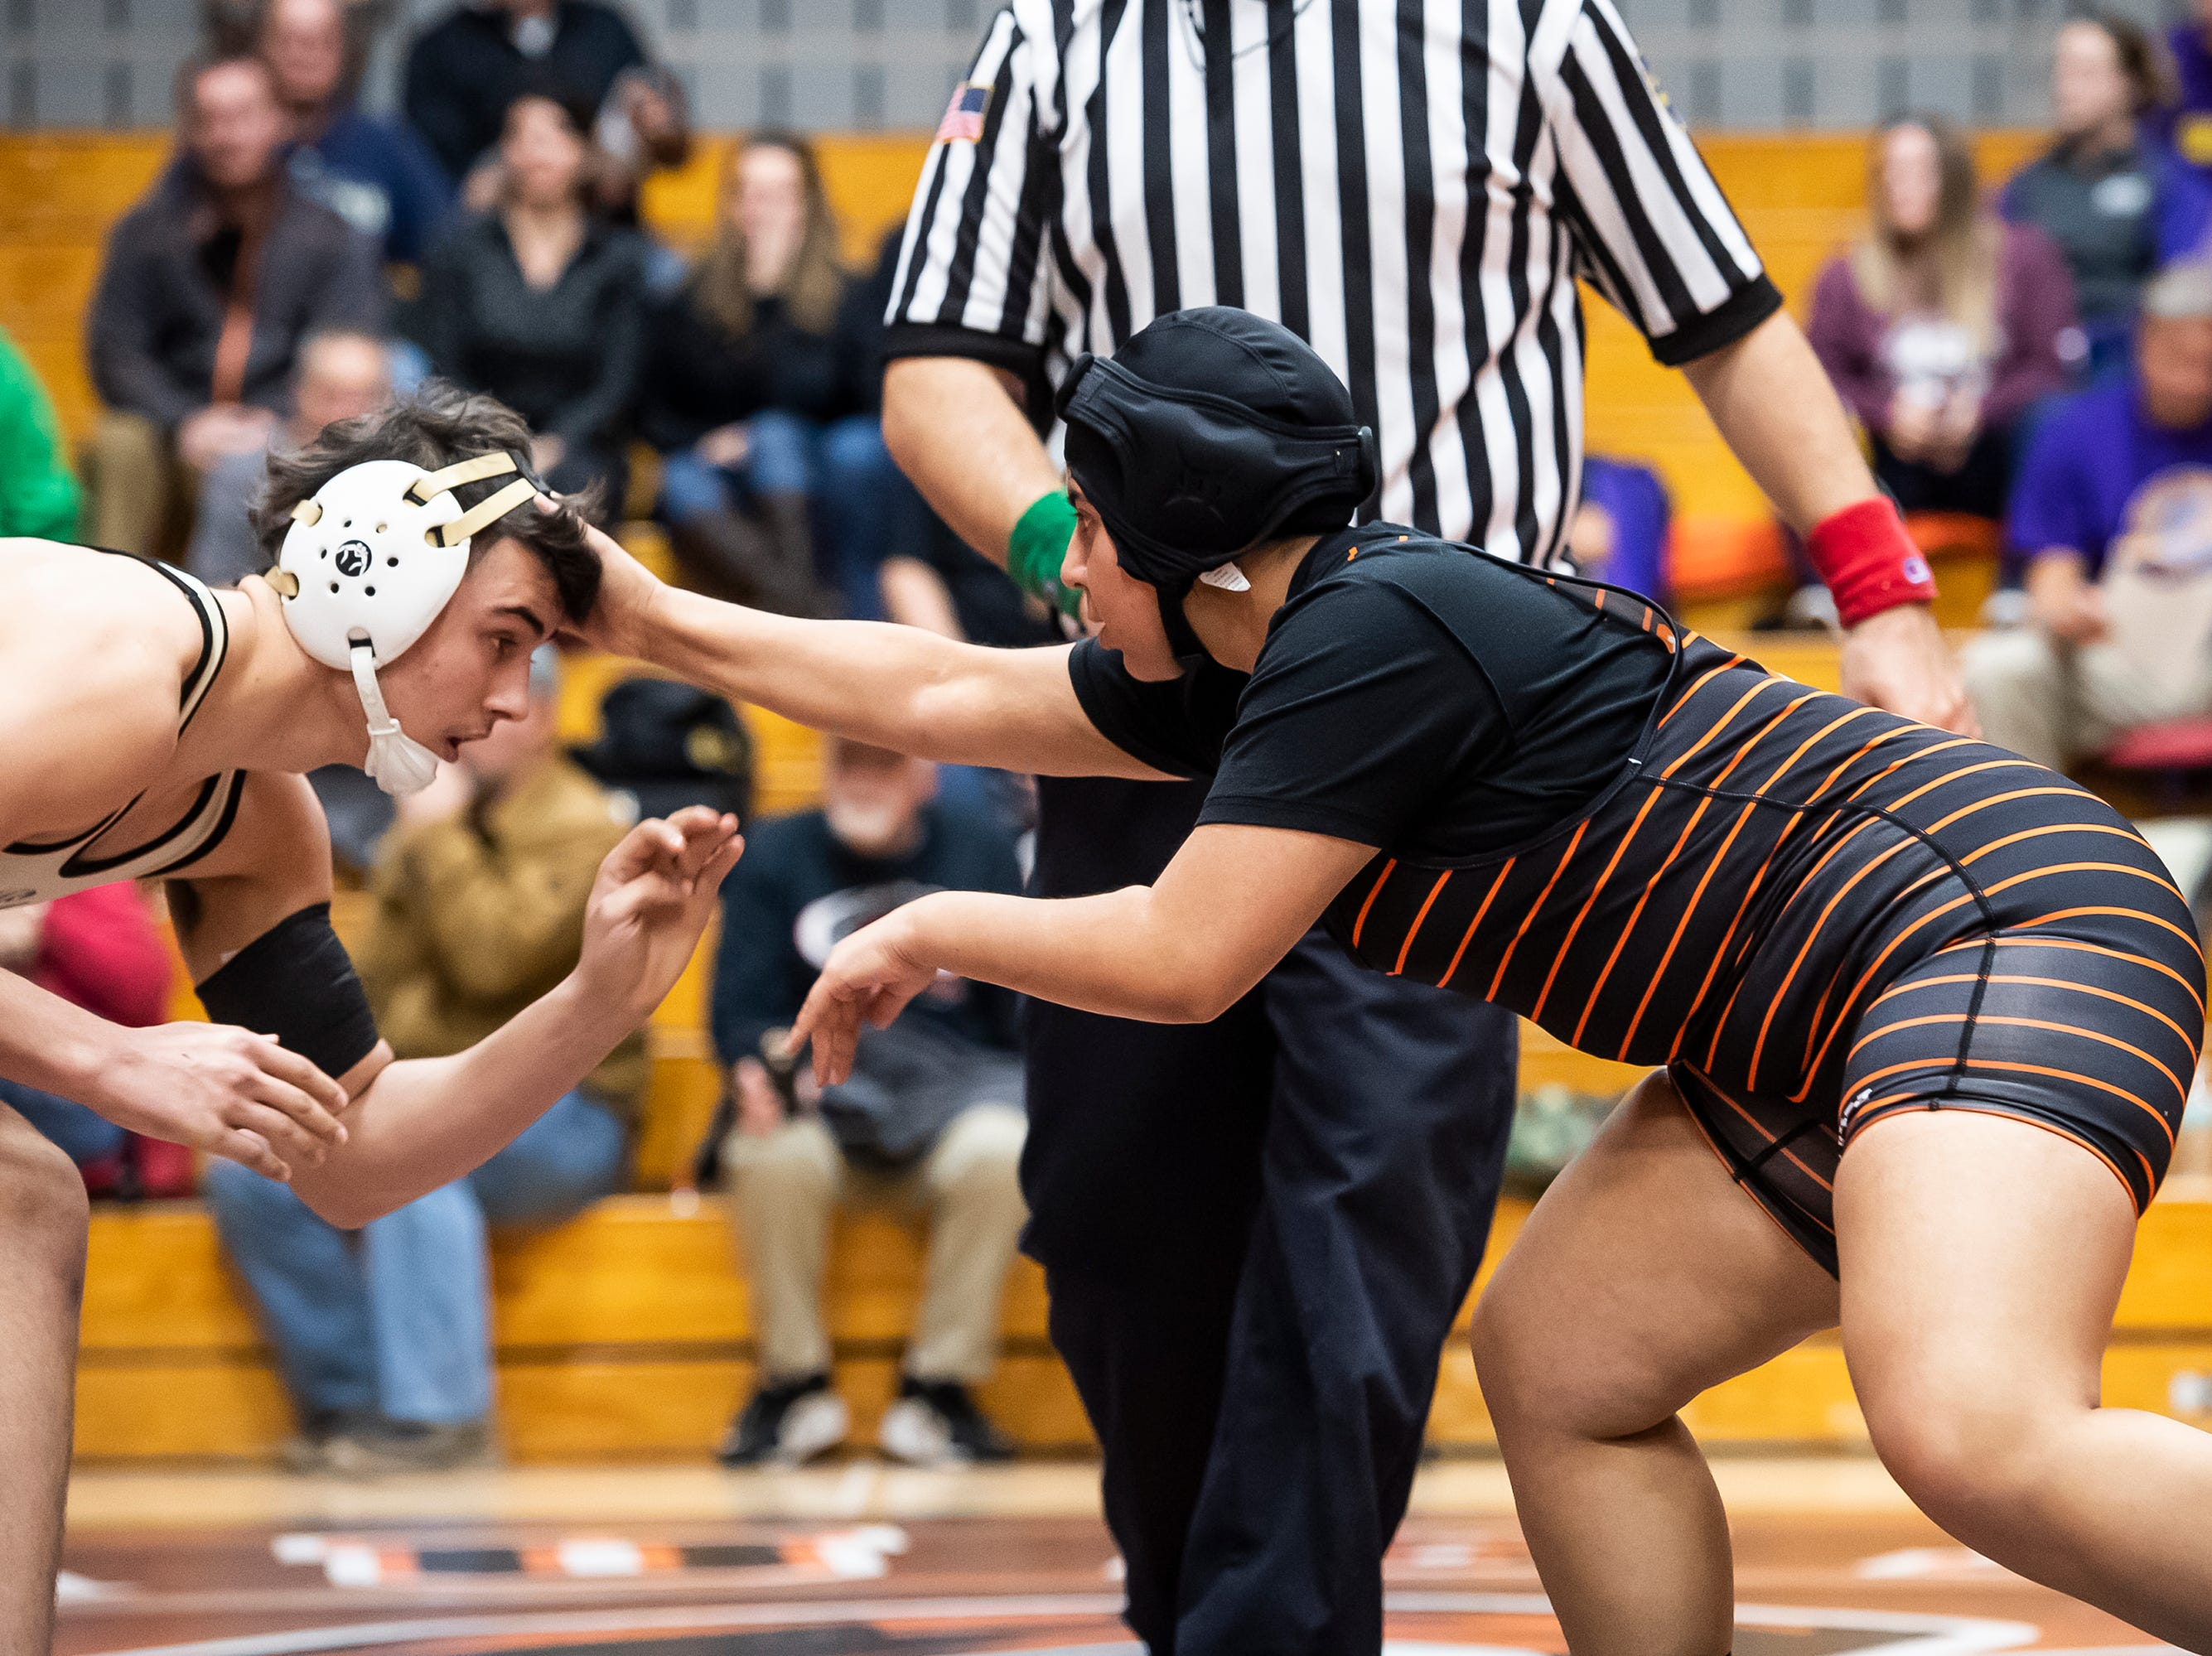 Hanover's Graciela Manjarrez wrestles Halifax's Dalton Marshall in a 170-pound bout during the first day of the District 3 Class 2A Section I tournament at Susquenita High School Friday, February 15, 2019. Marshall won by fall.